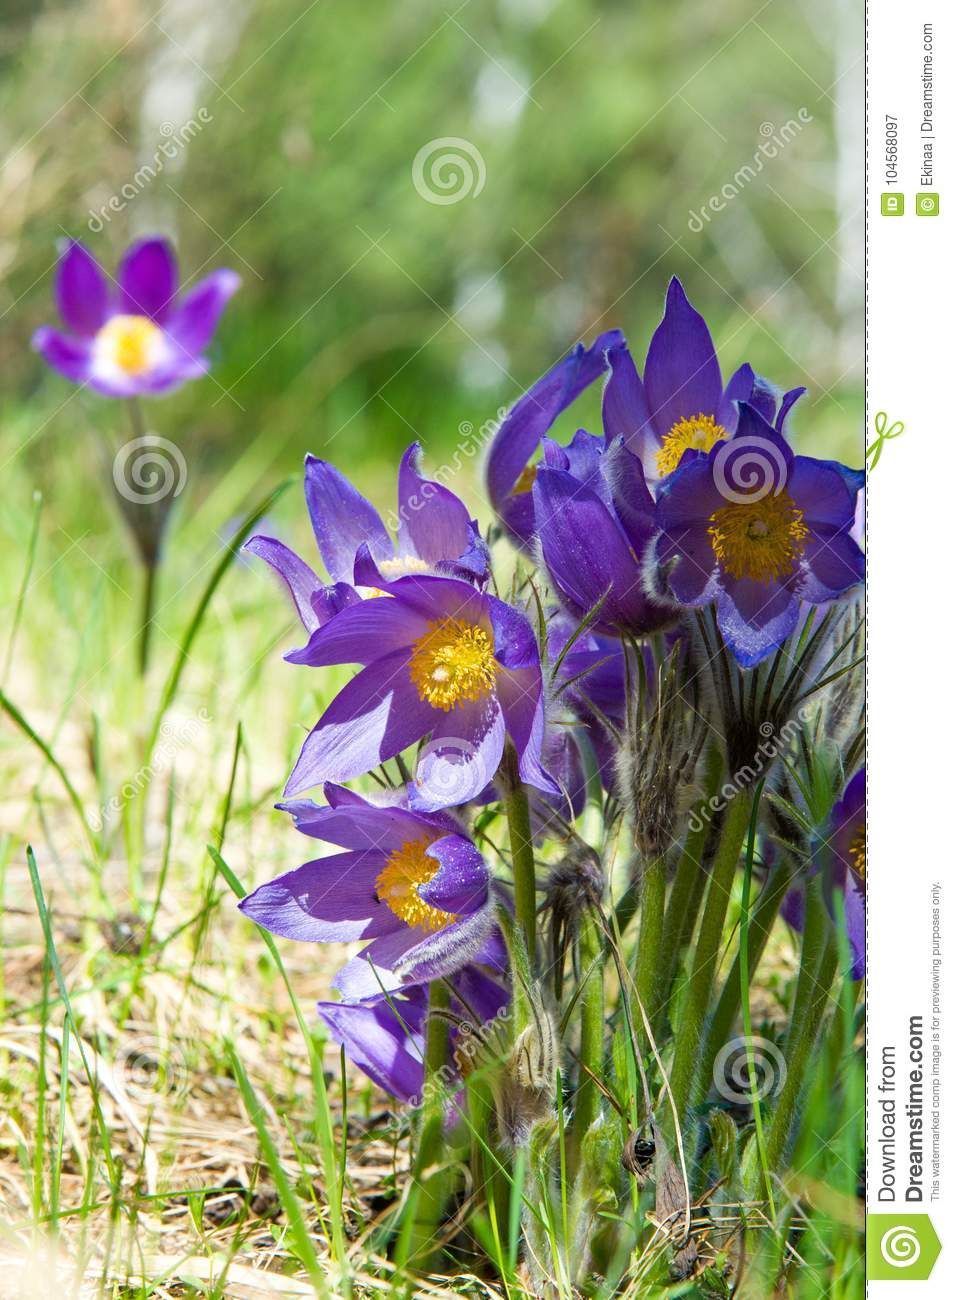 Spring landscape flowers growing in the wild spring flower pul download spring landscape flowers growing in the wild spring flower pul stock image mightylinksfo